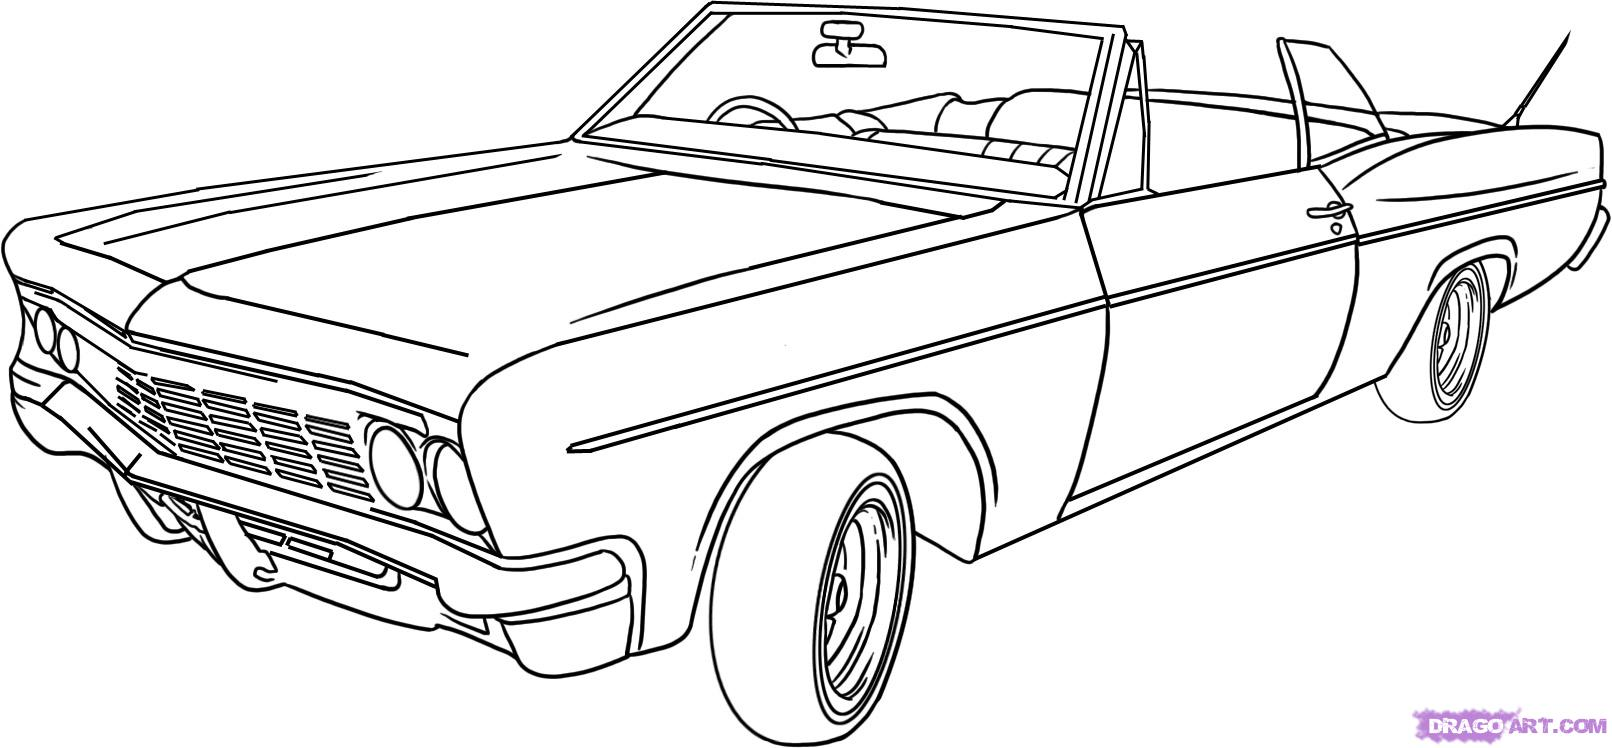 Automobile Line Drawing at GetDrawings.com | Free for personal use ...